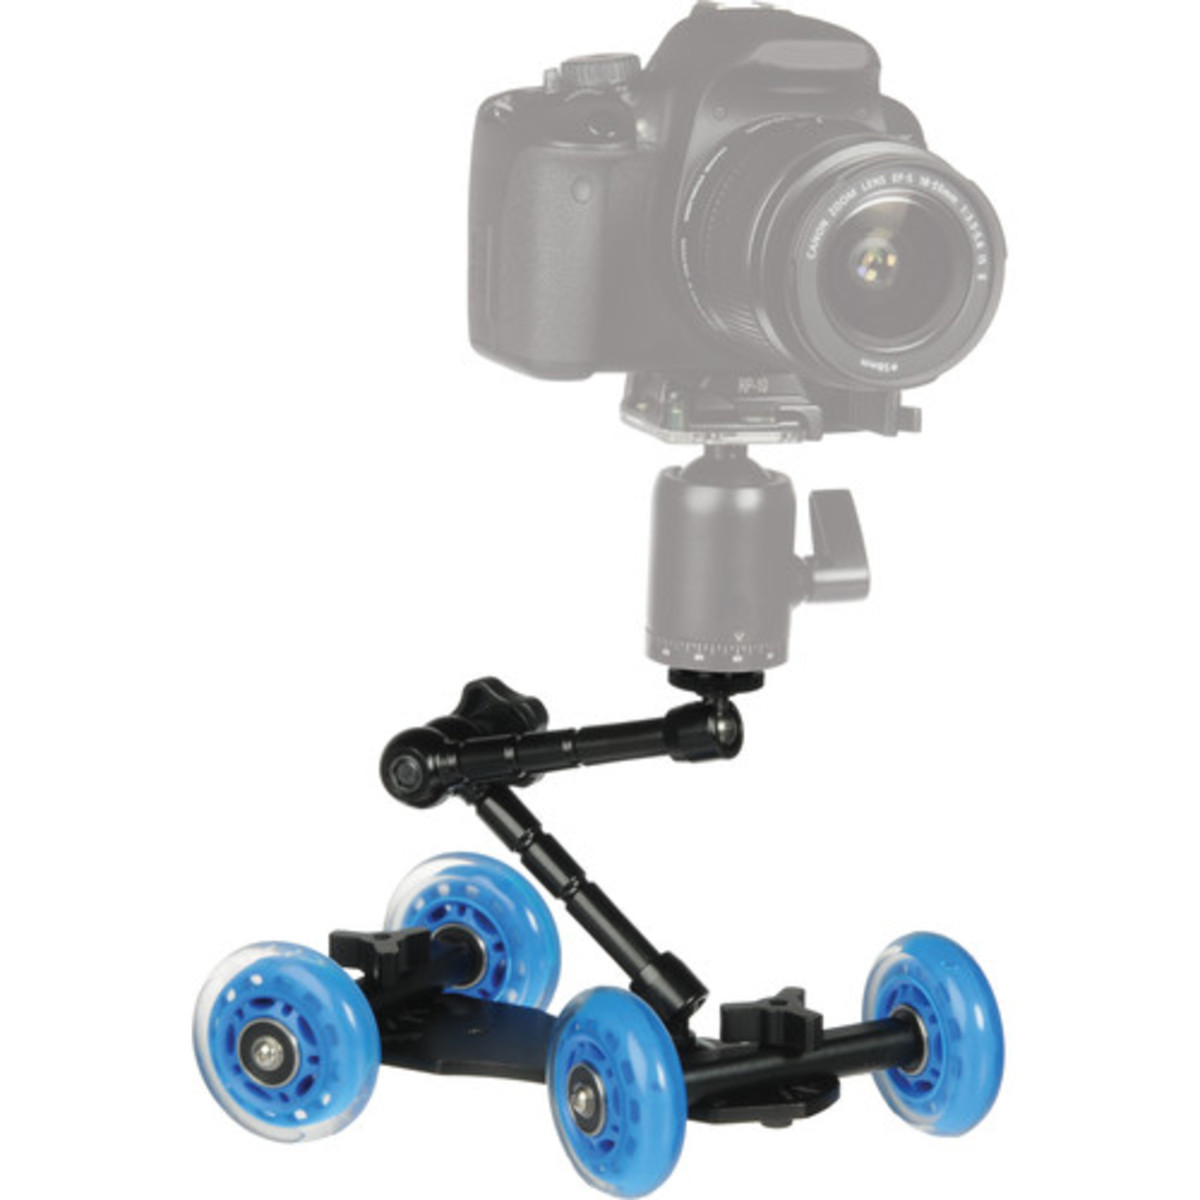 This mobile camera could provide hours of fun and memories for Dad and the rest of the family.